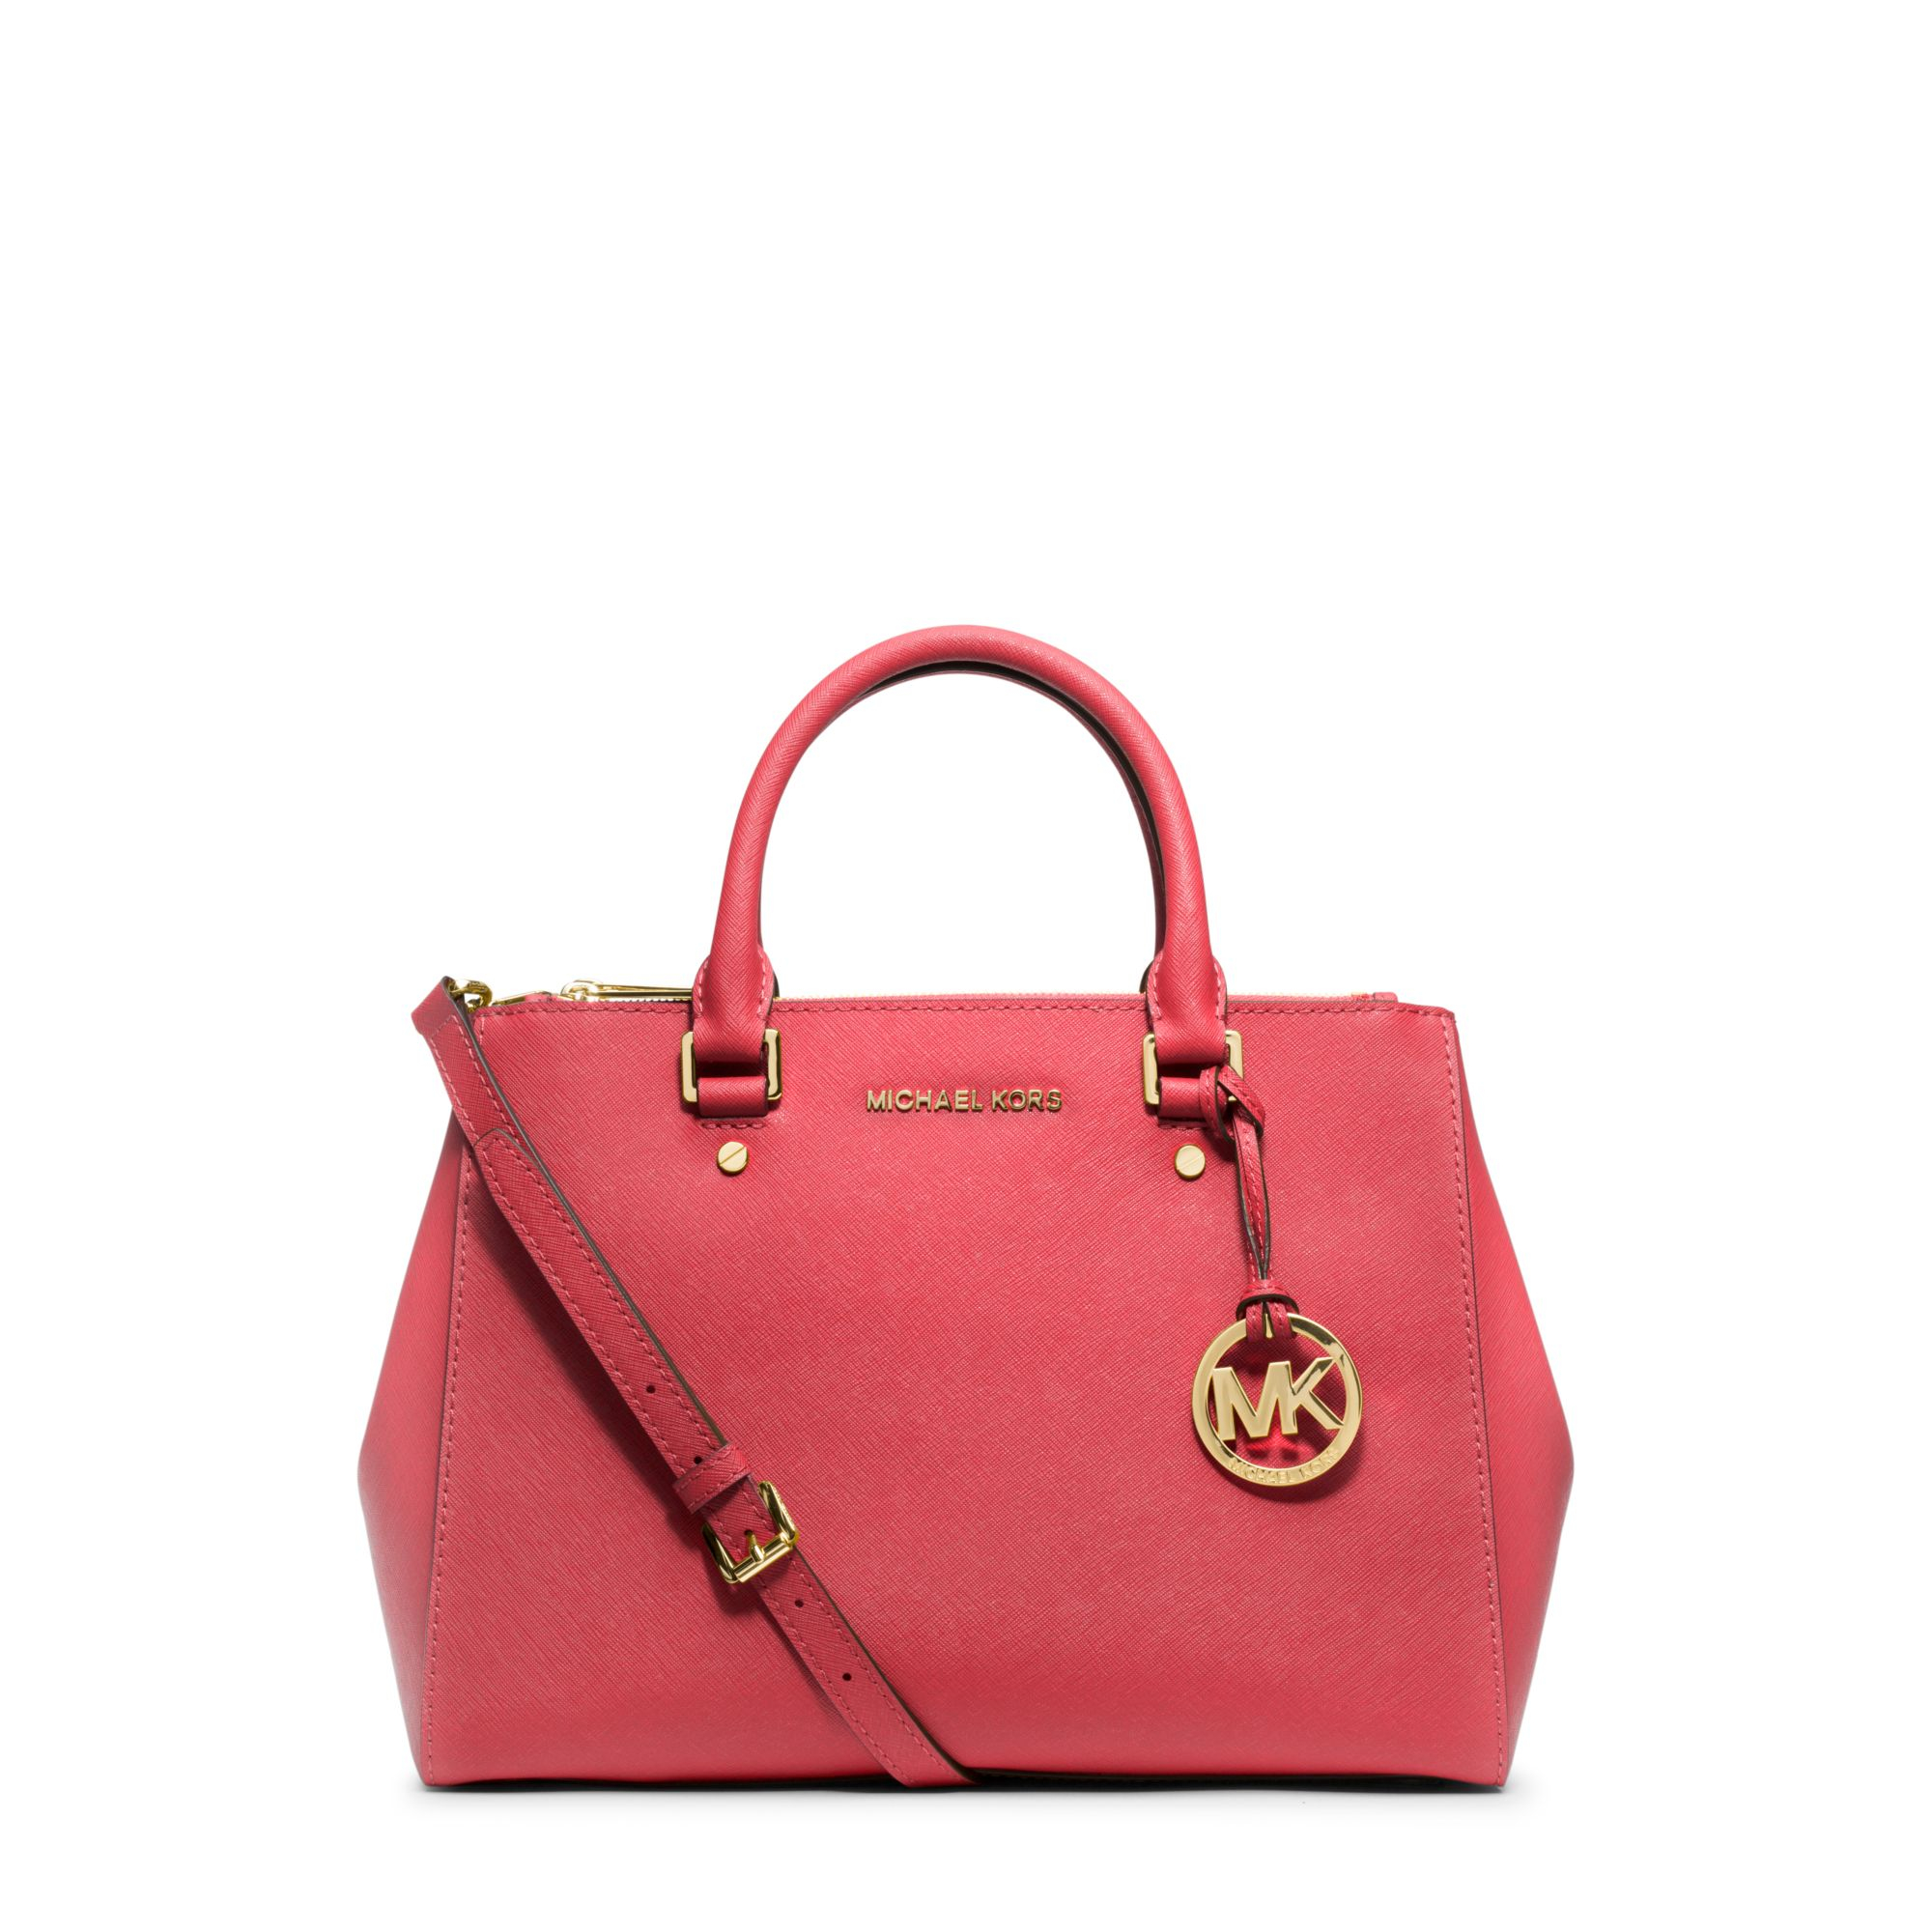 michael kors sutton medium saffiano leather satchel in red. Black Bedroom Furniture Sets. Home Design Ideas